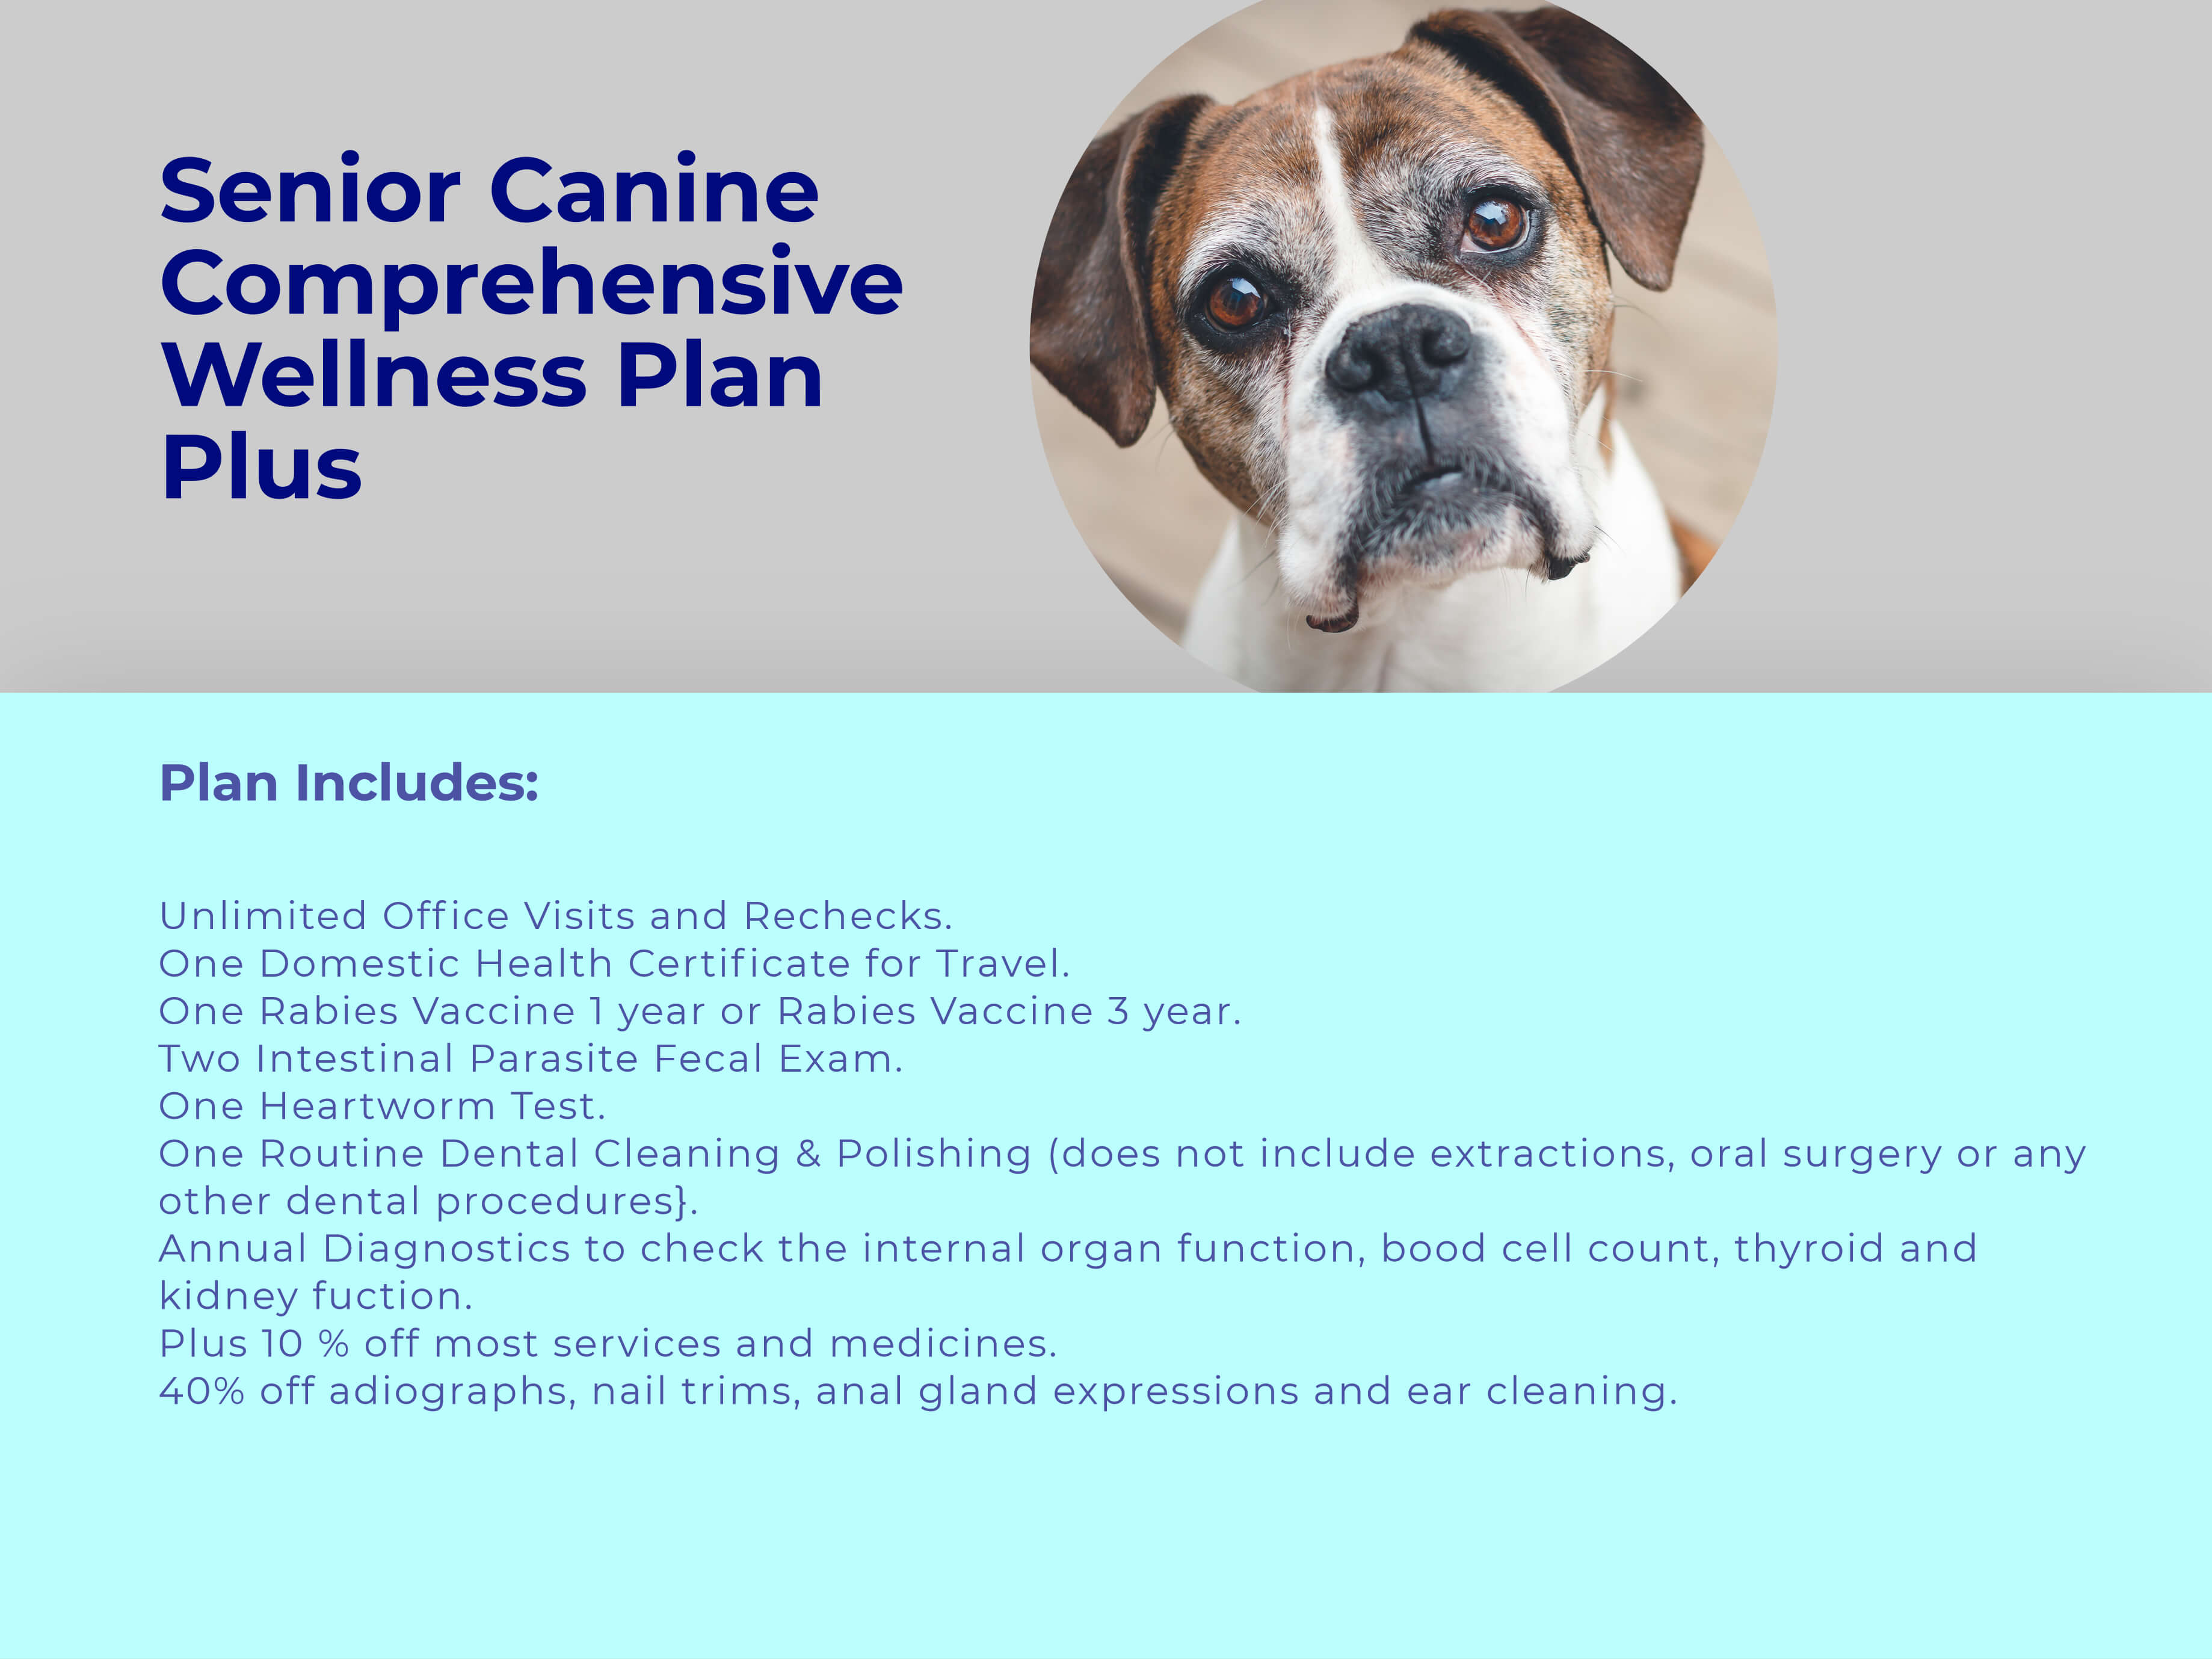 Senior Dog PLUS Comprehensive Wellness Plan at animal wellness clinic